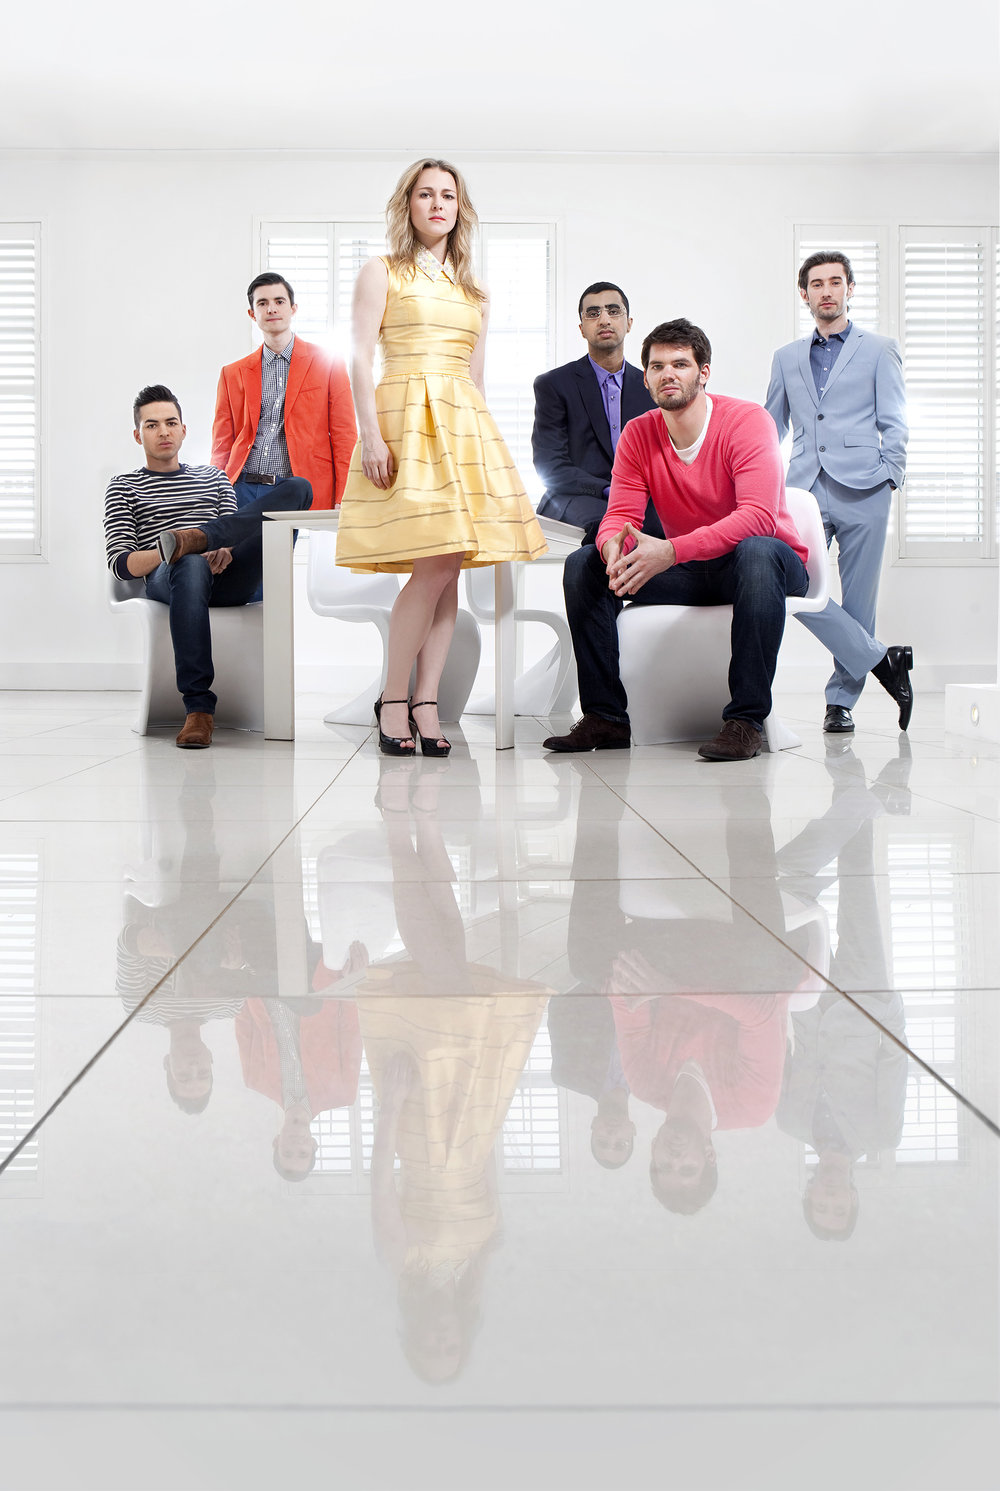 Publicity campaign for the TV show Million Dollar Intern, for BBC Worldwide